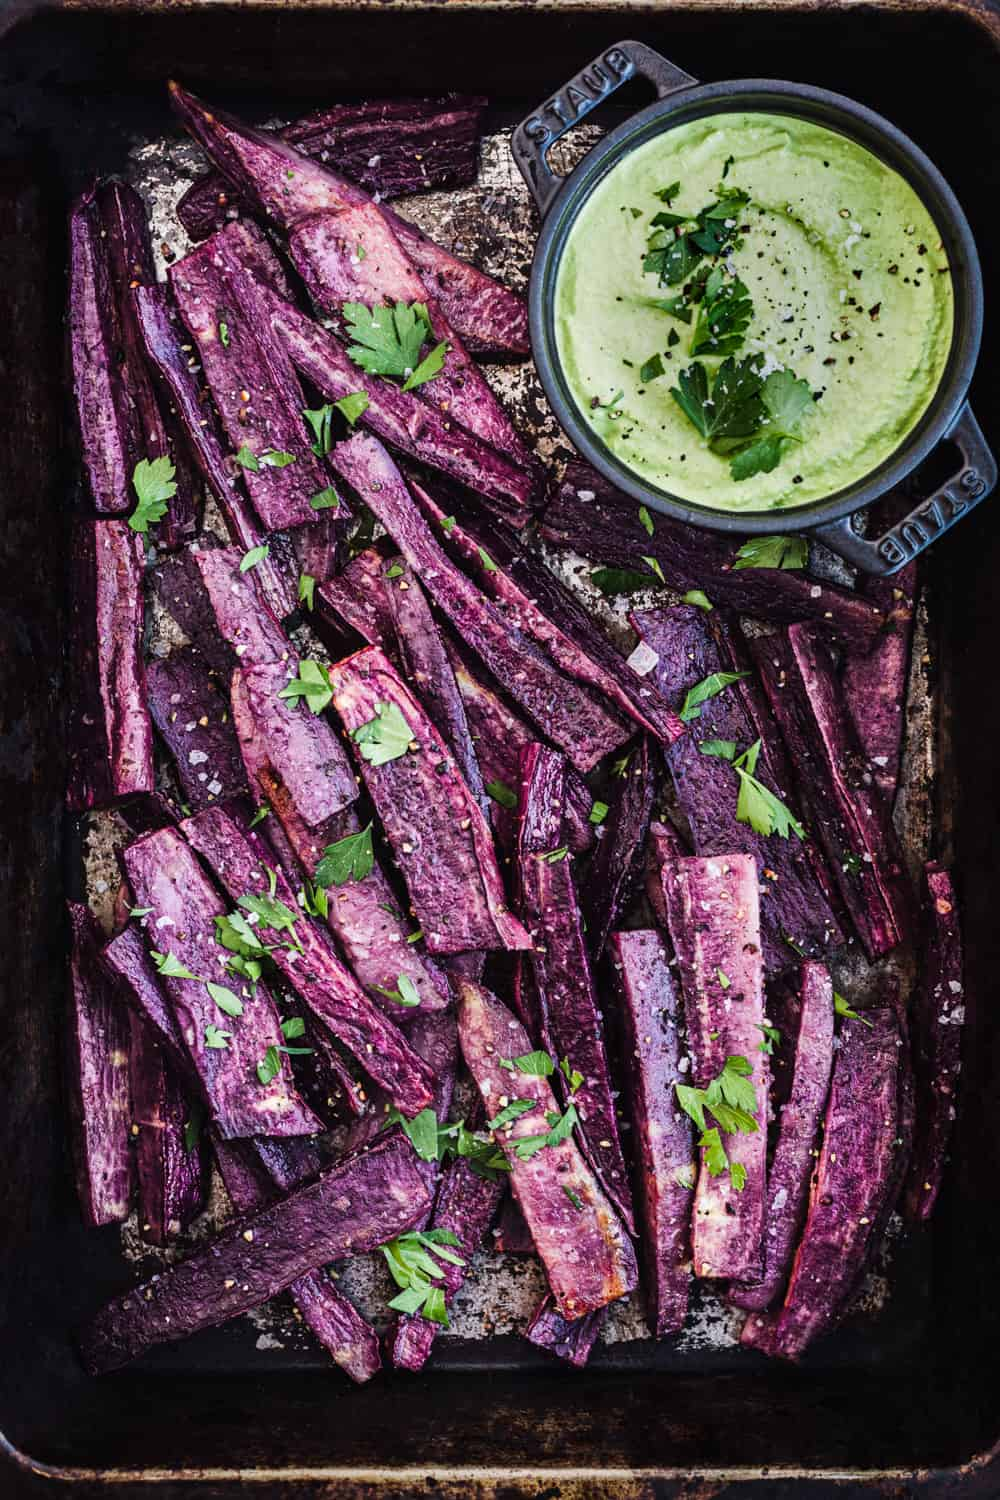 Purple sweet potatoes wedges in a baking dish with green tahini in a bowl, sprinkled with salt, pepper and parsley; overhead shot.